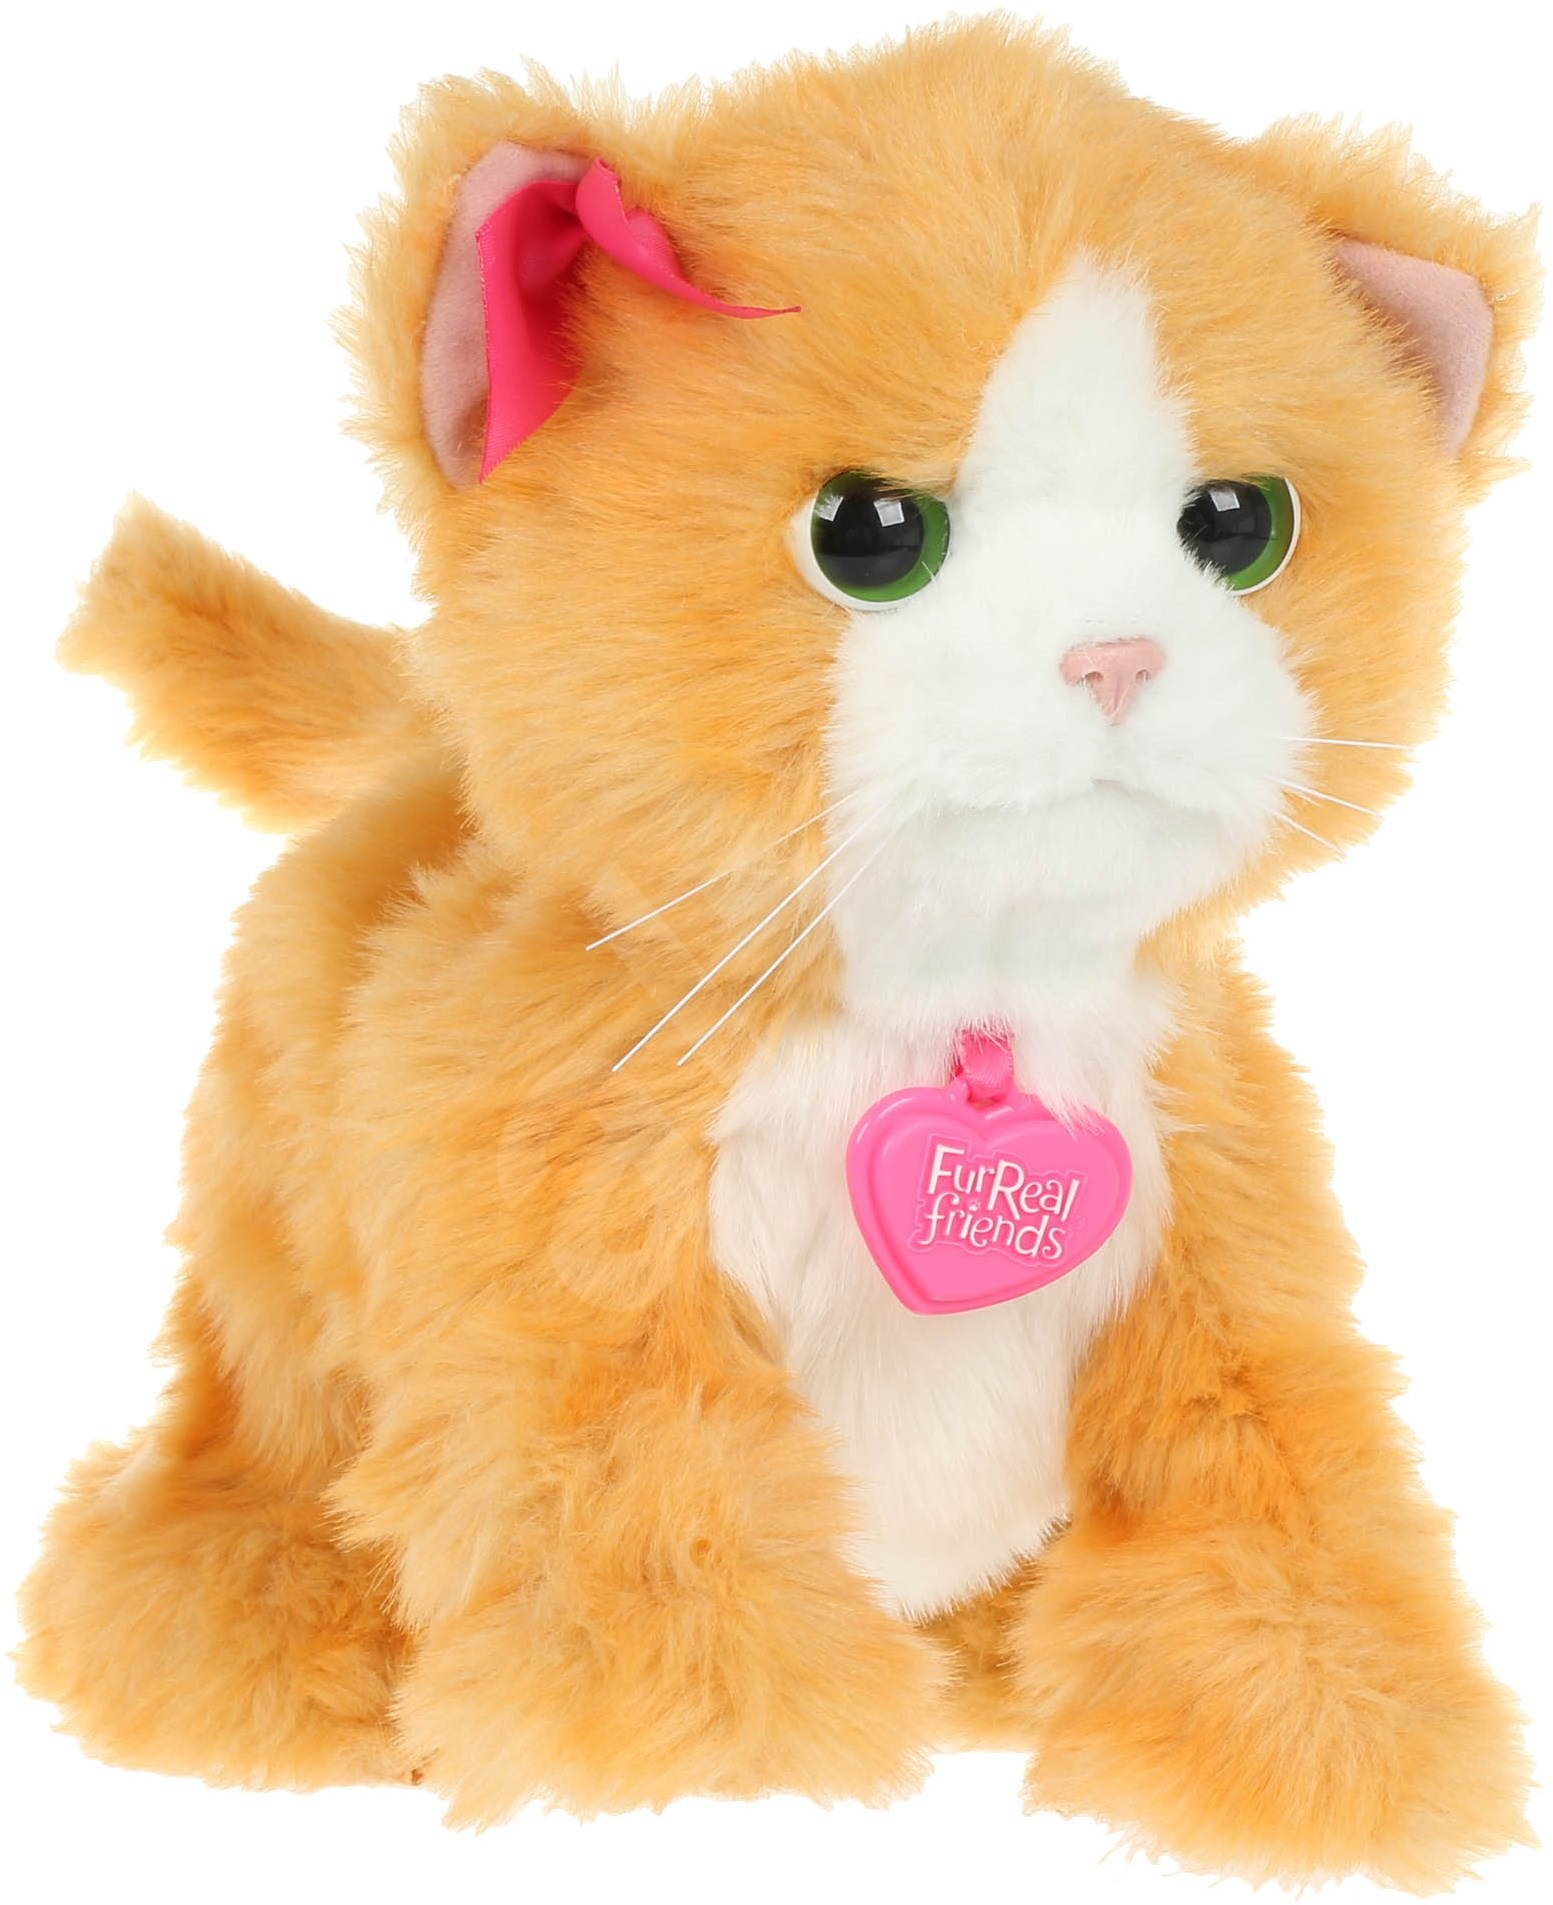 Top Furreal Friends Toys : Furreal friends cat daisy interactive toy toys